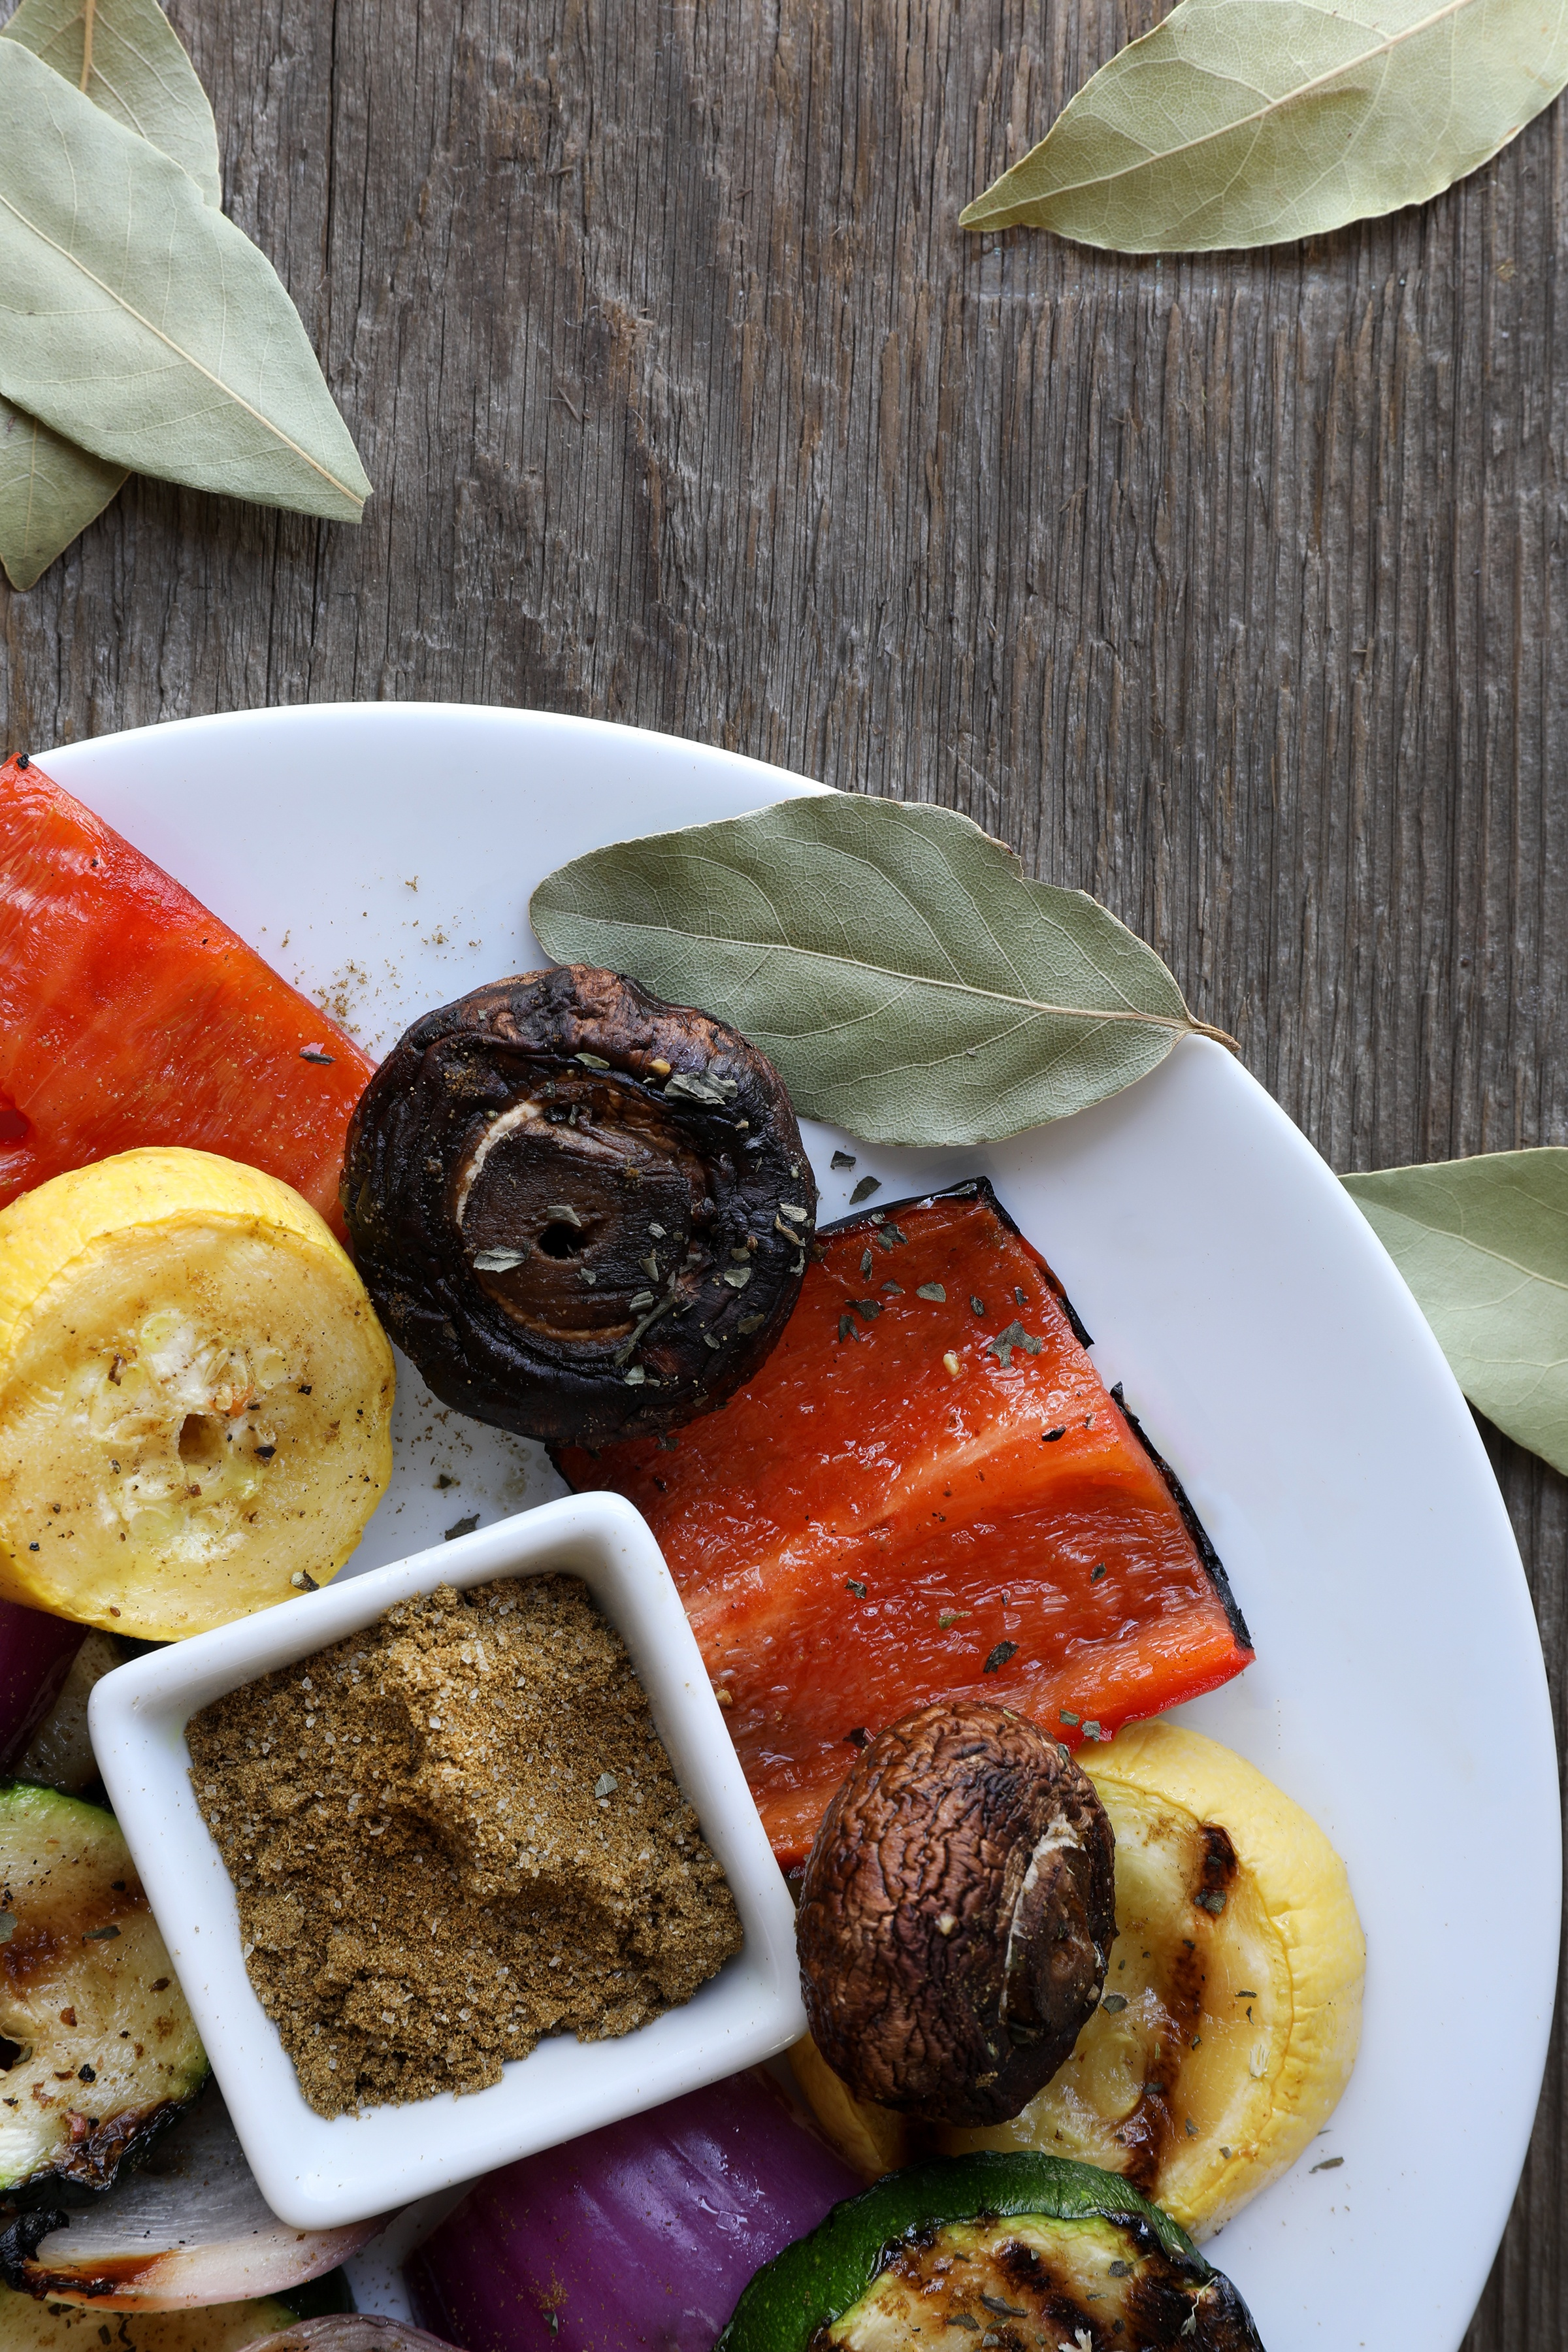 Grilled vegetables with gourmet salt and spices